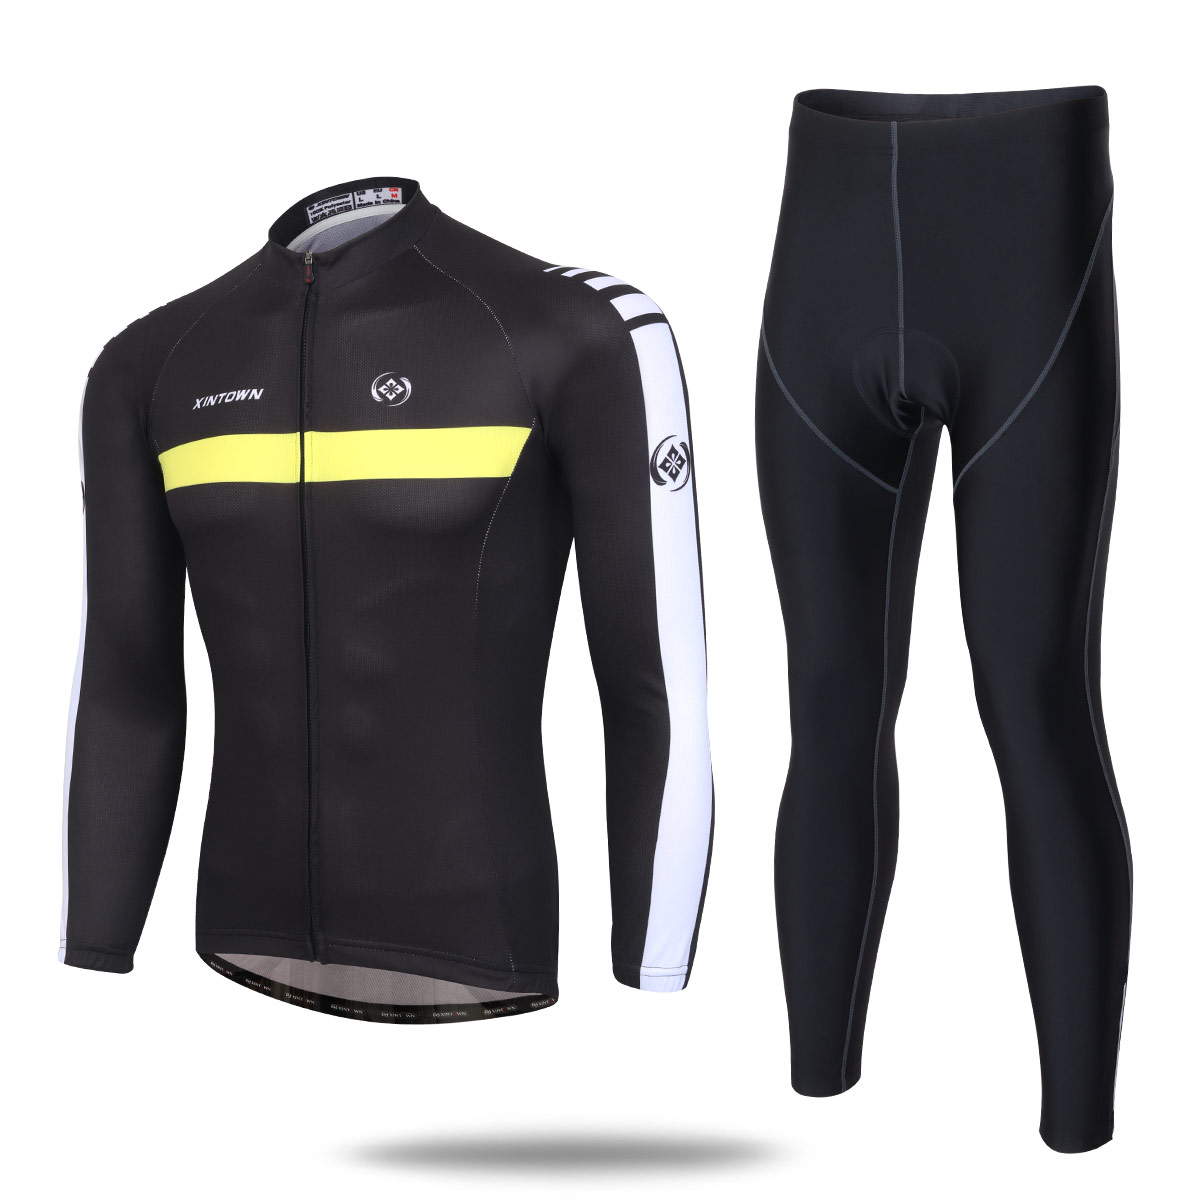 2016 Men/Women Cycling Jersey Long Sleeve bike Clothing S-5XL Bicycle Jerseys and Cycling Pants Set Ropa Ciclismo Banquet Four